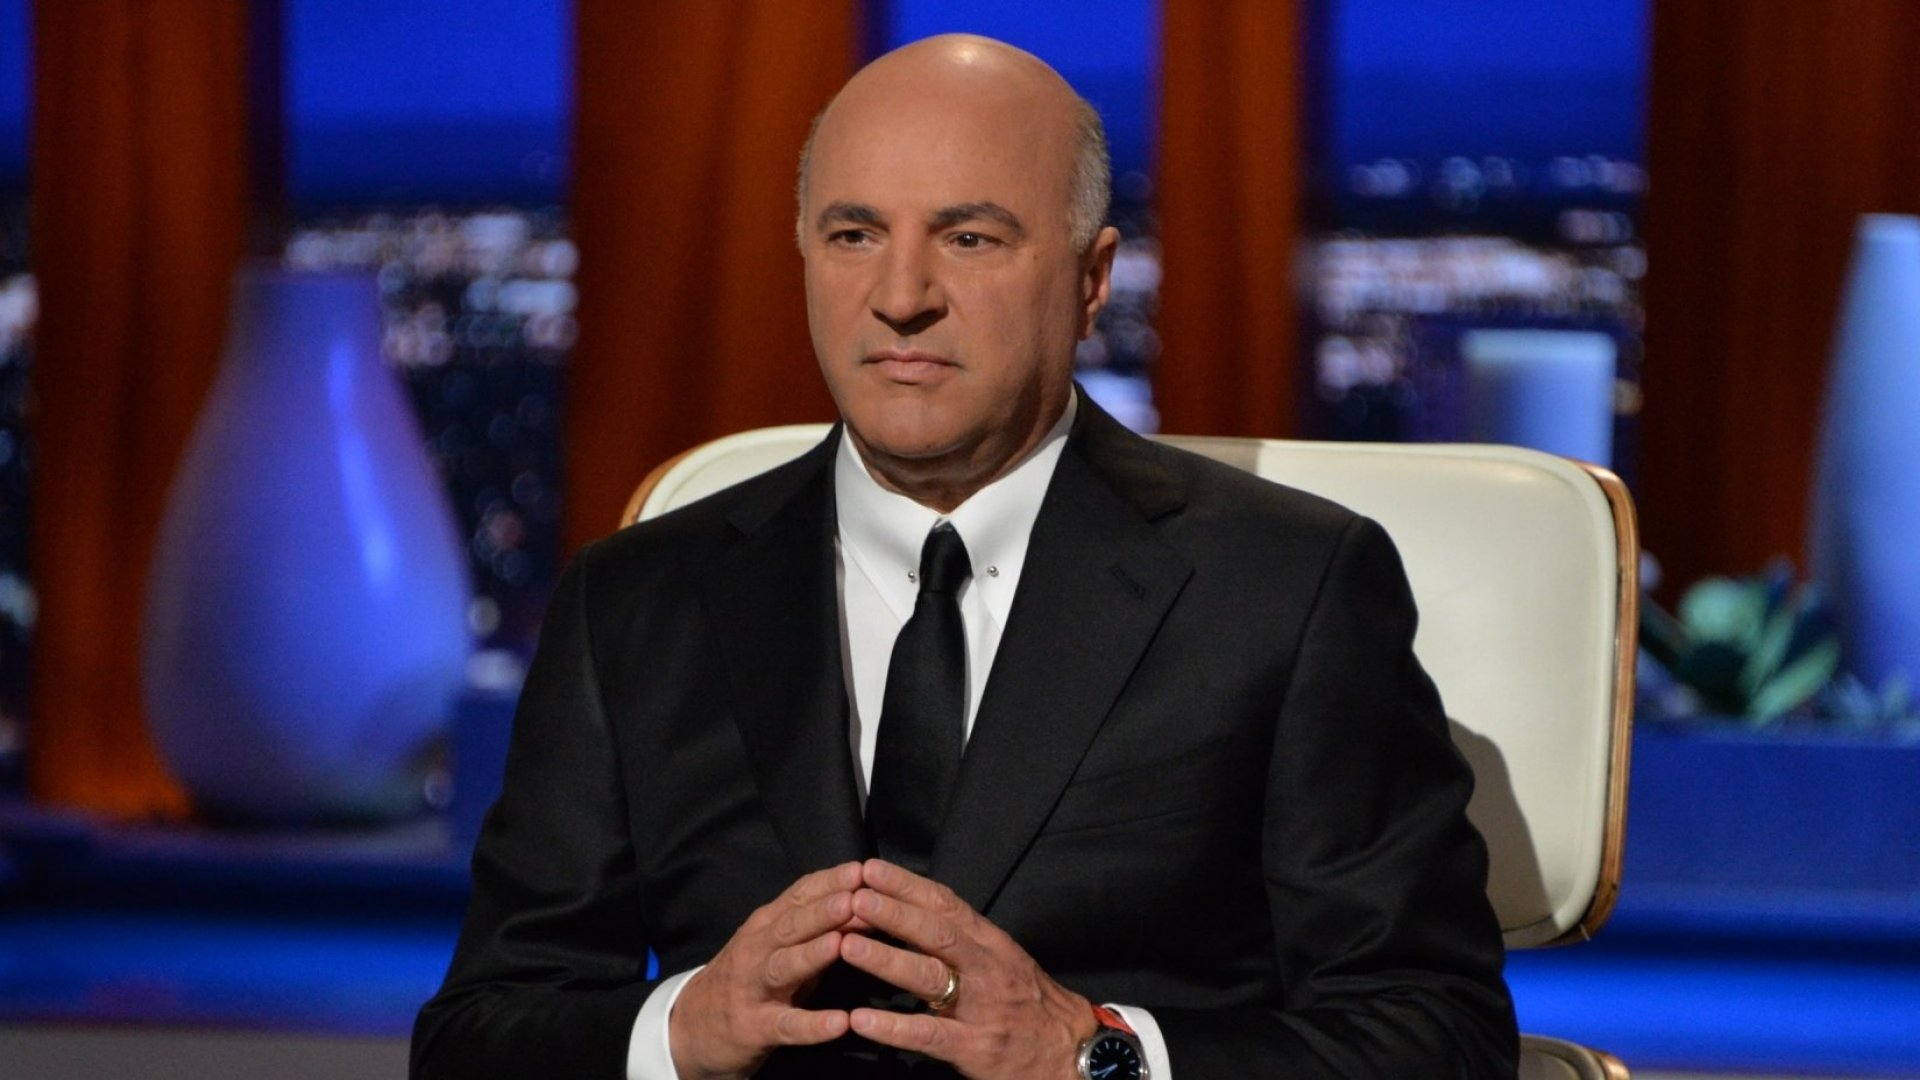 Kevin O'Leary On Negotiating: The Very Best Deals Are When You Both Walk Away Unhappy